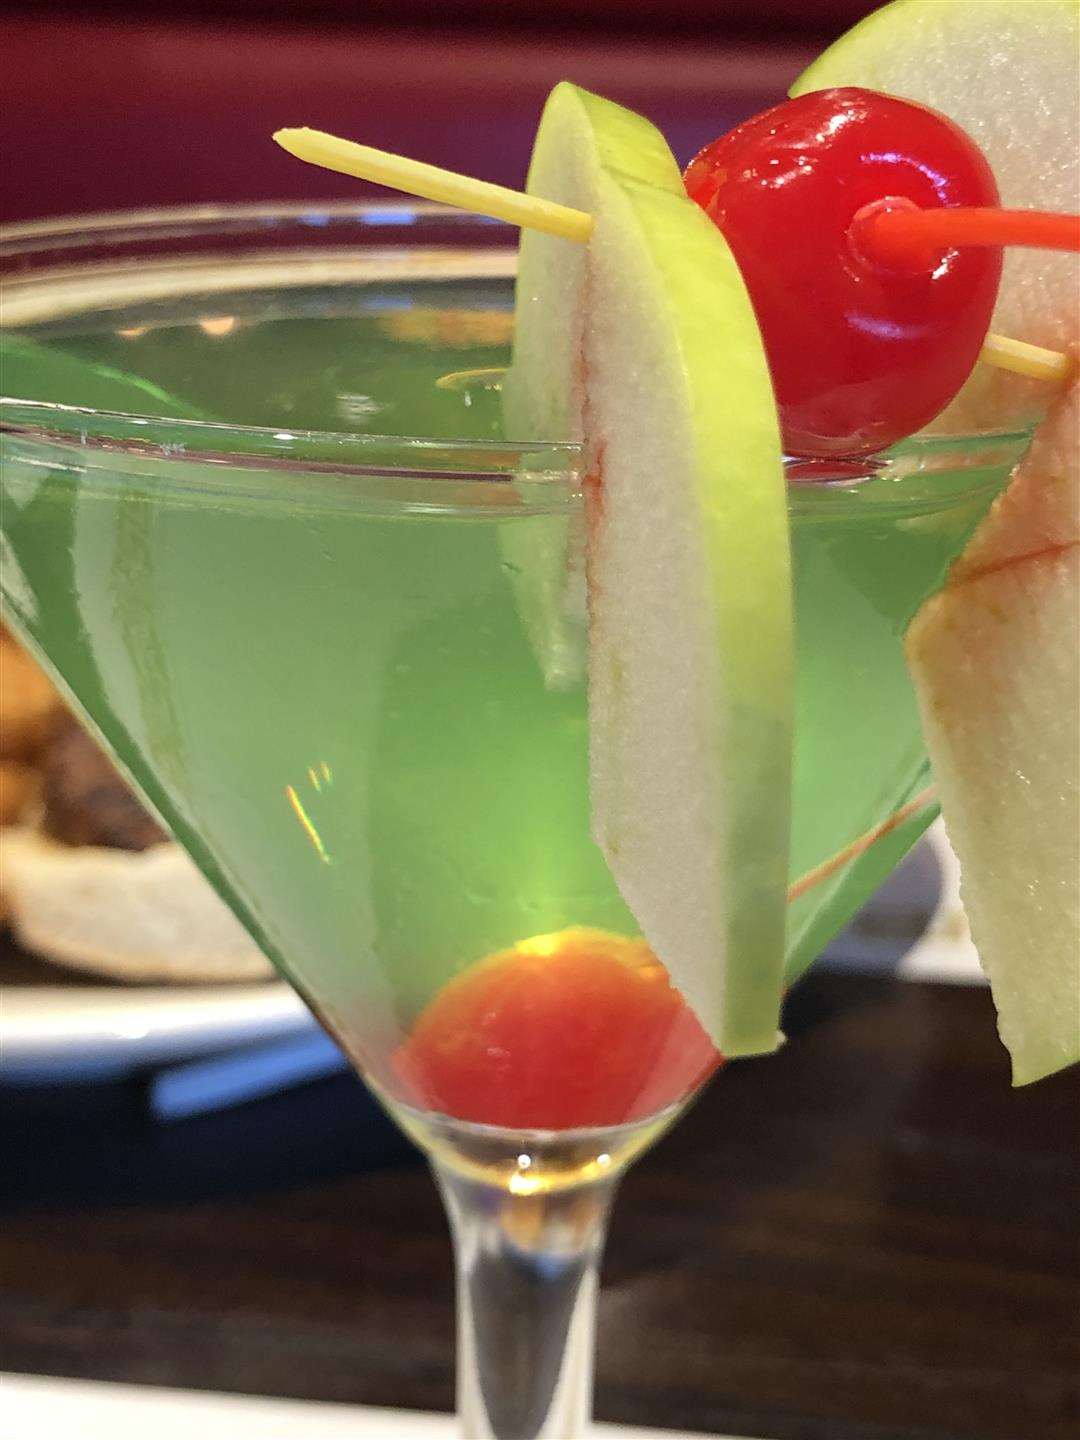 Green cocktail in a martini glass with a lemon wedge and a cherry